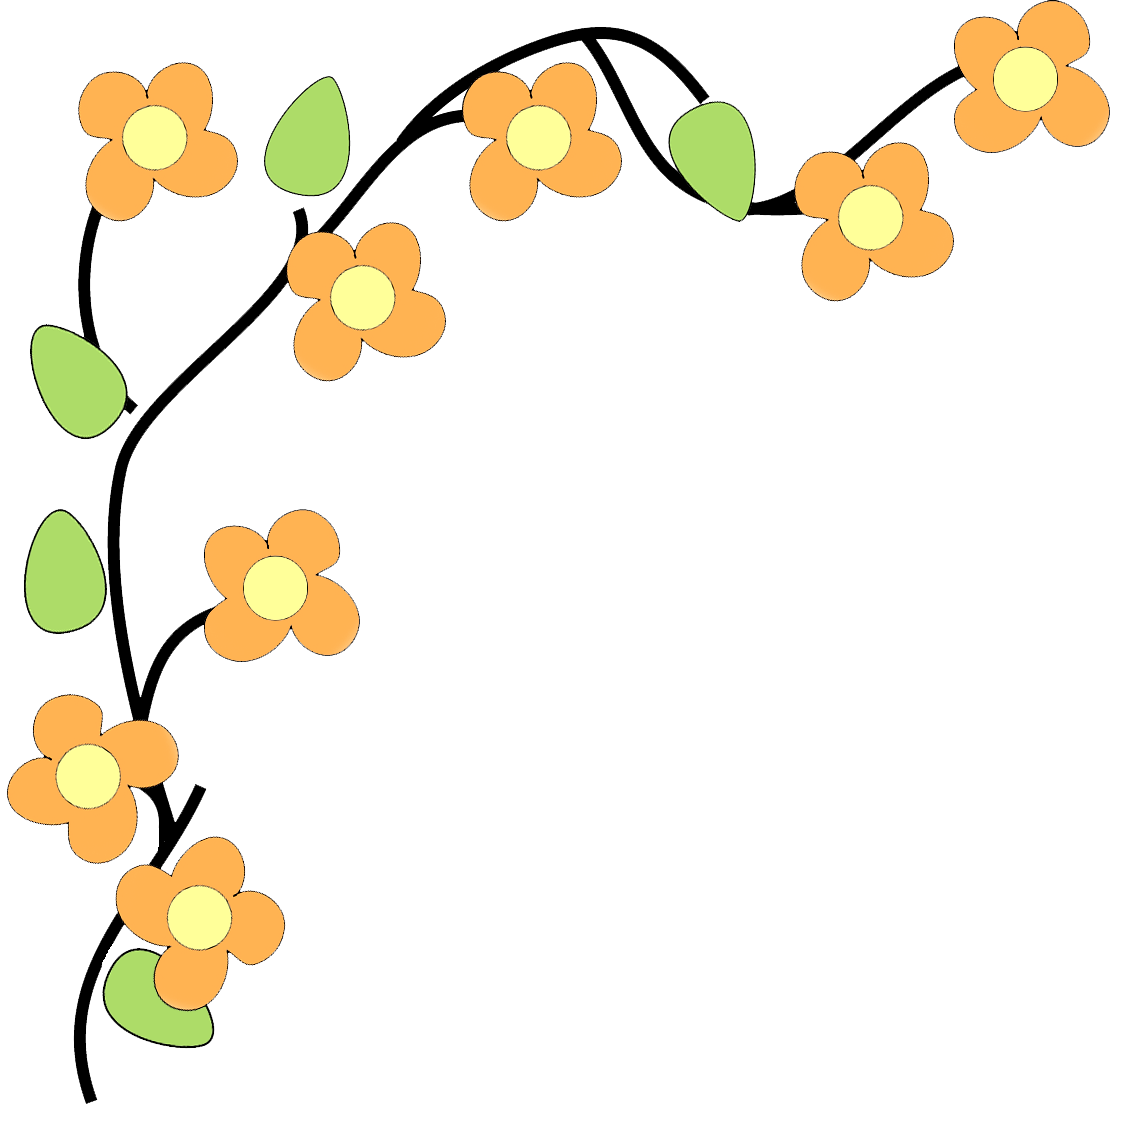 Flower border clipart. Kid flowers pinterest fun